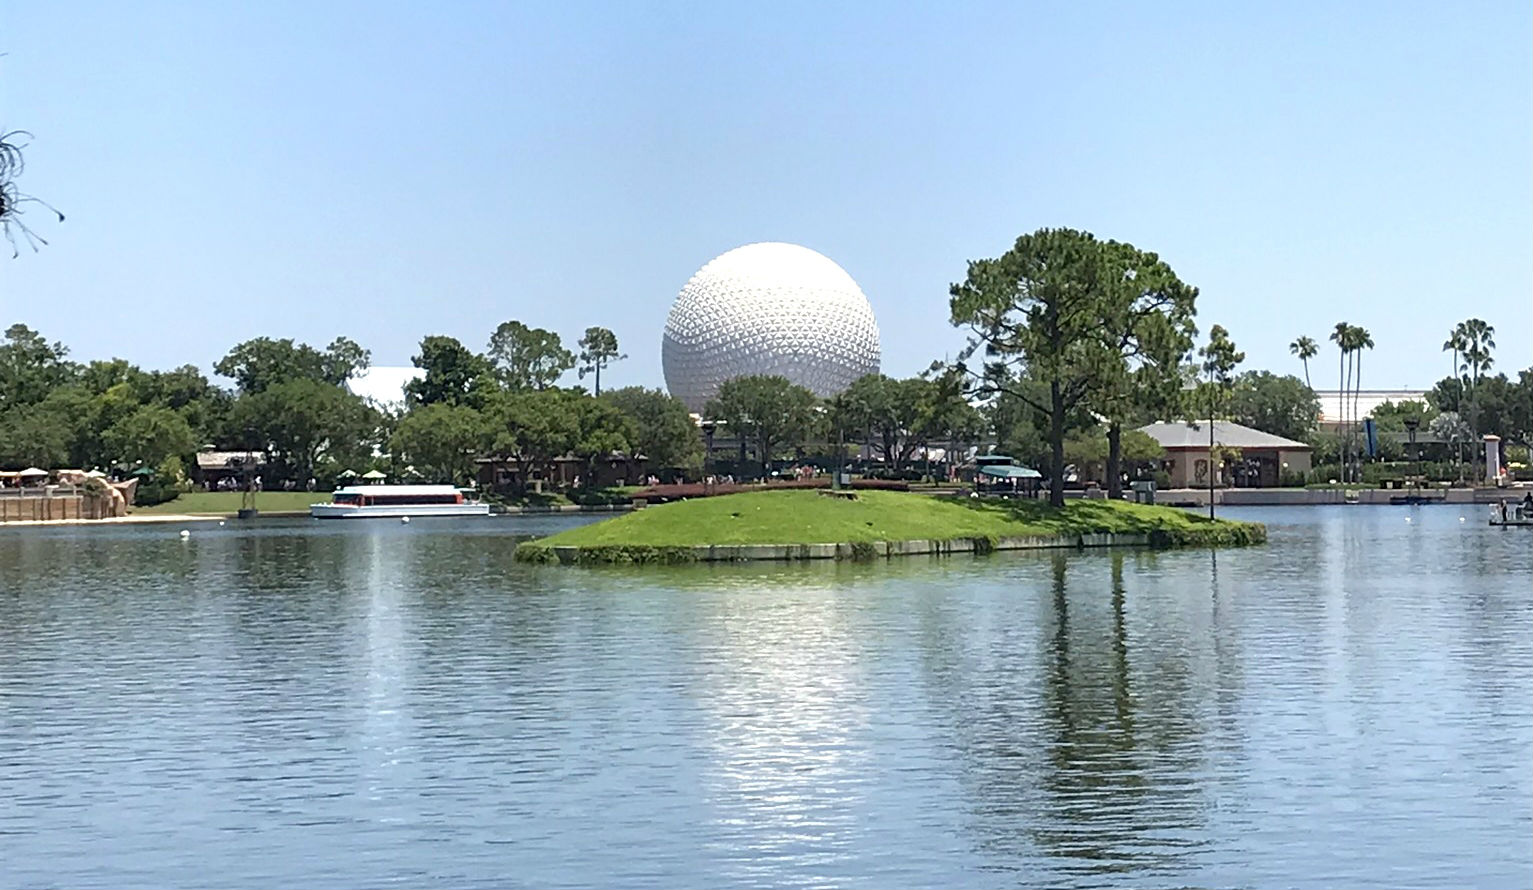 Photo of Spaceship Earth at Epcot